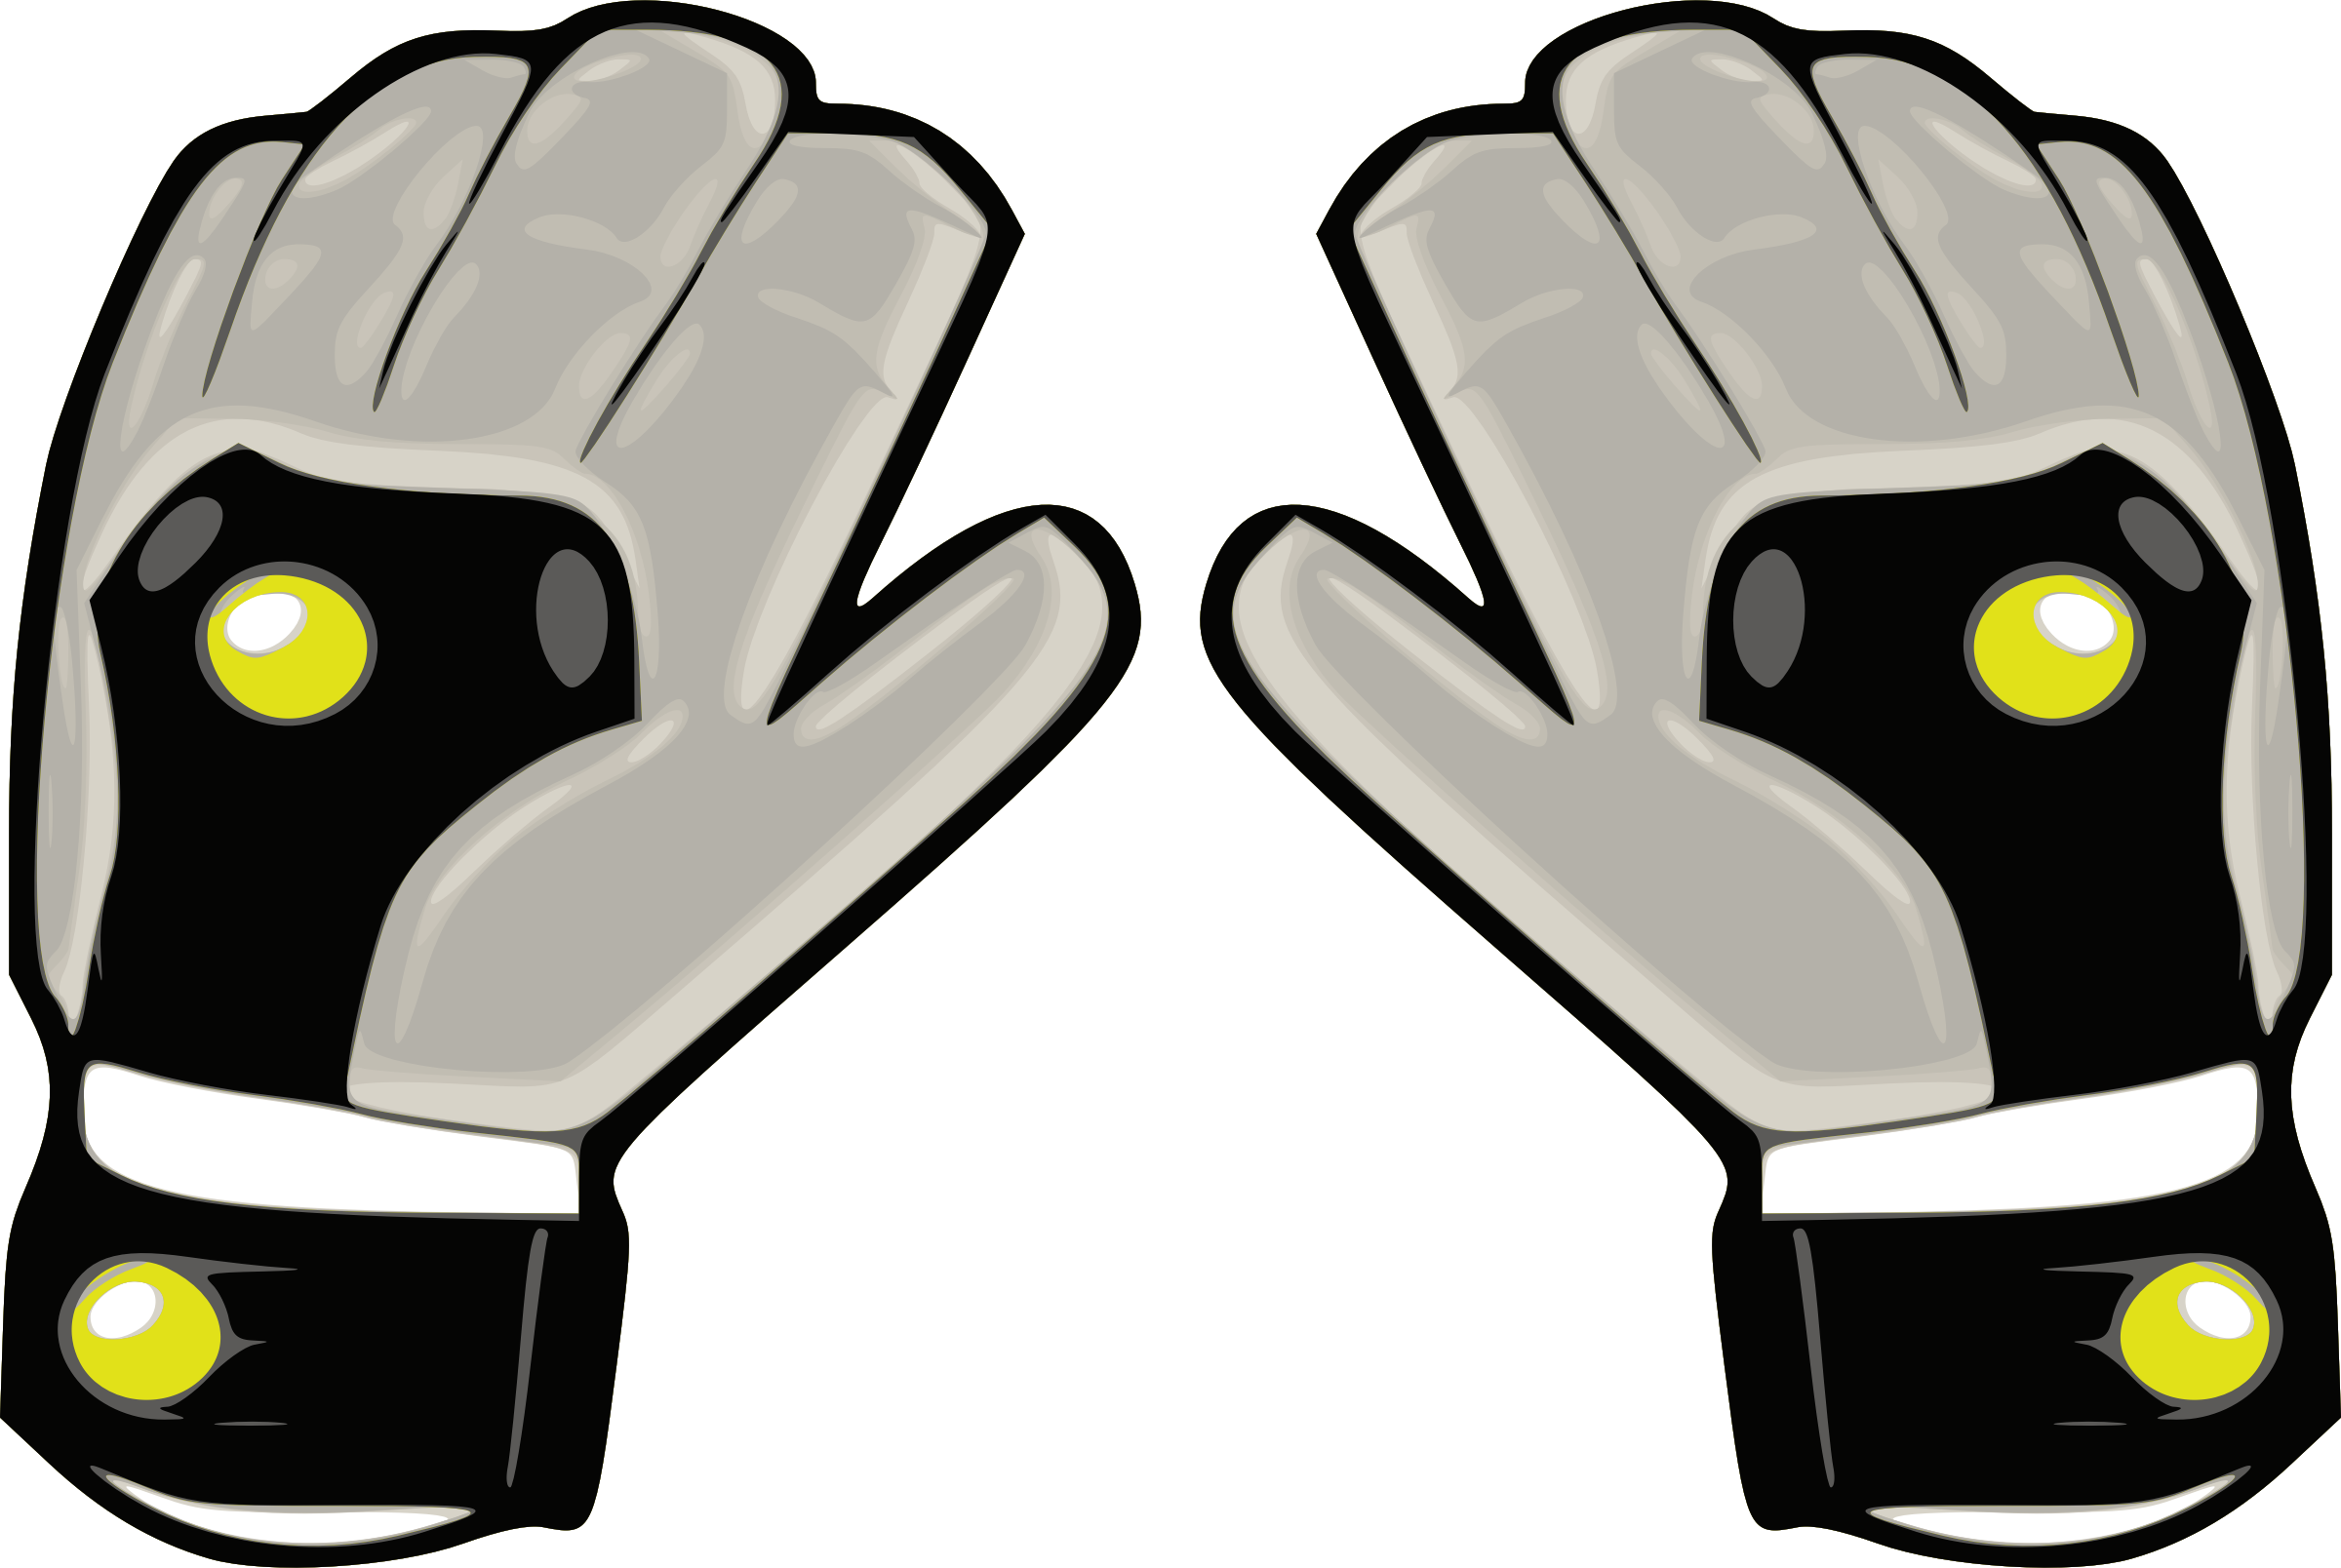 Football glove clipart graphic library download Clipart - Gloves 3 graphic library download